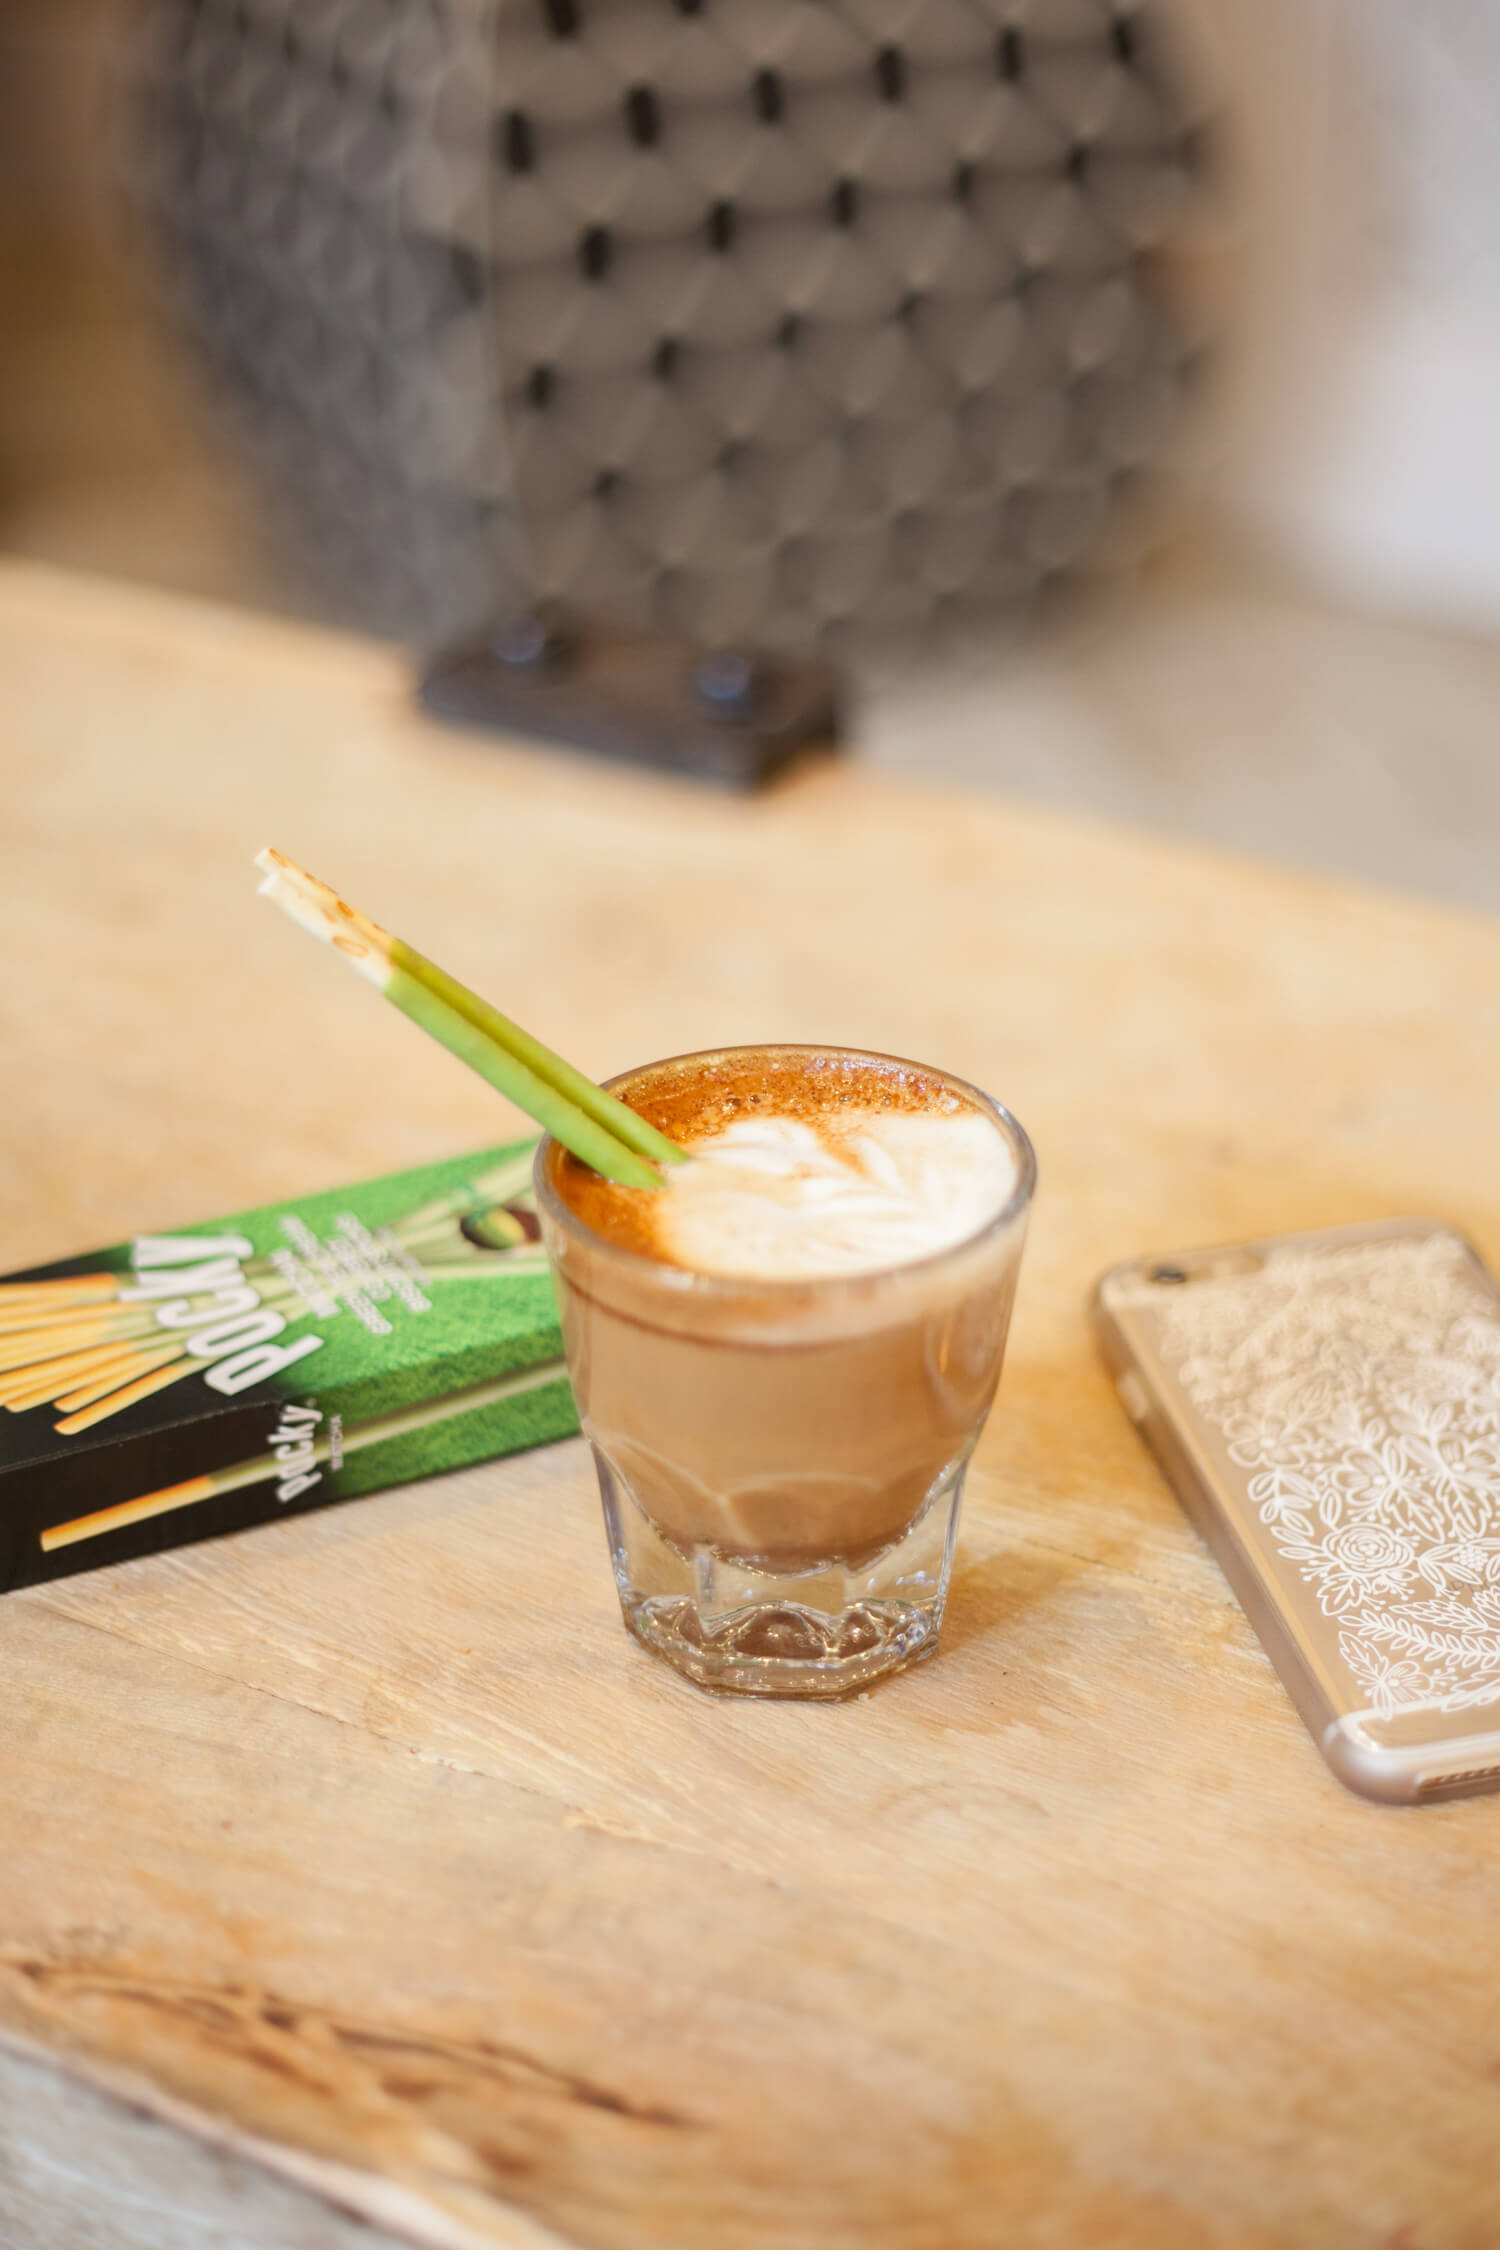 Use your Matcha Pocky as a Cortado coffee stirrer! Genius.